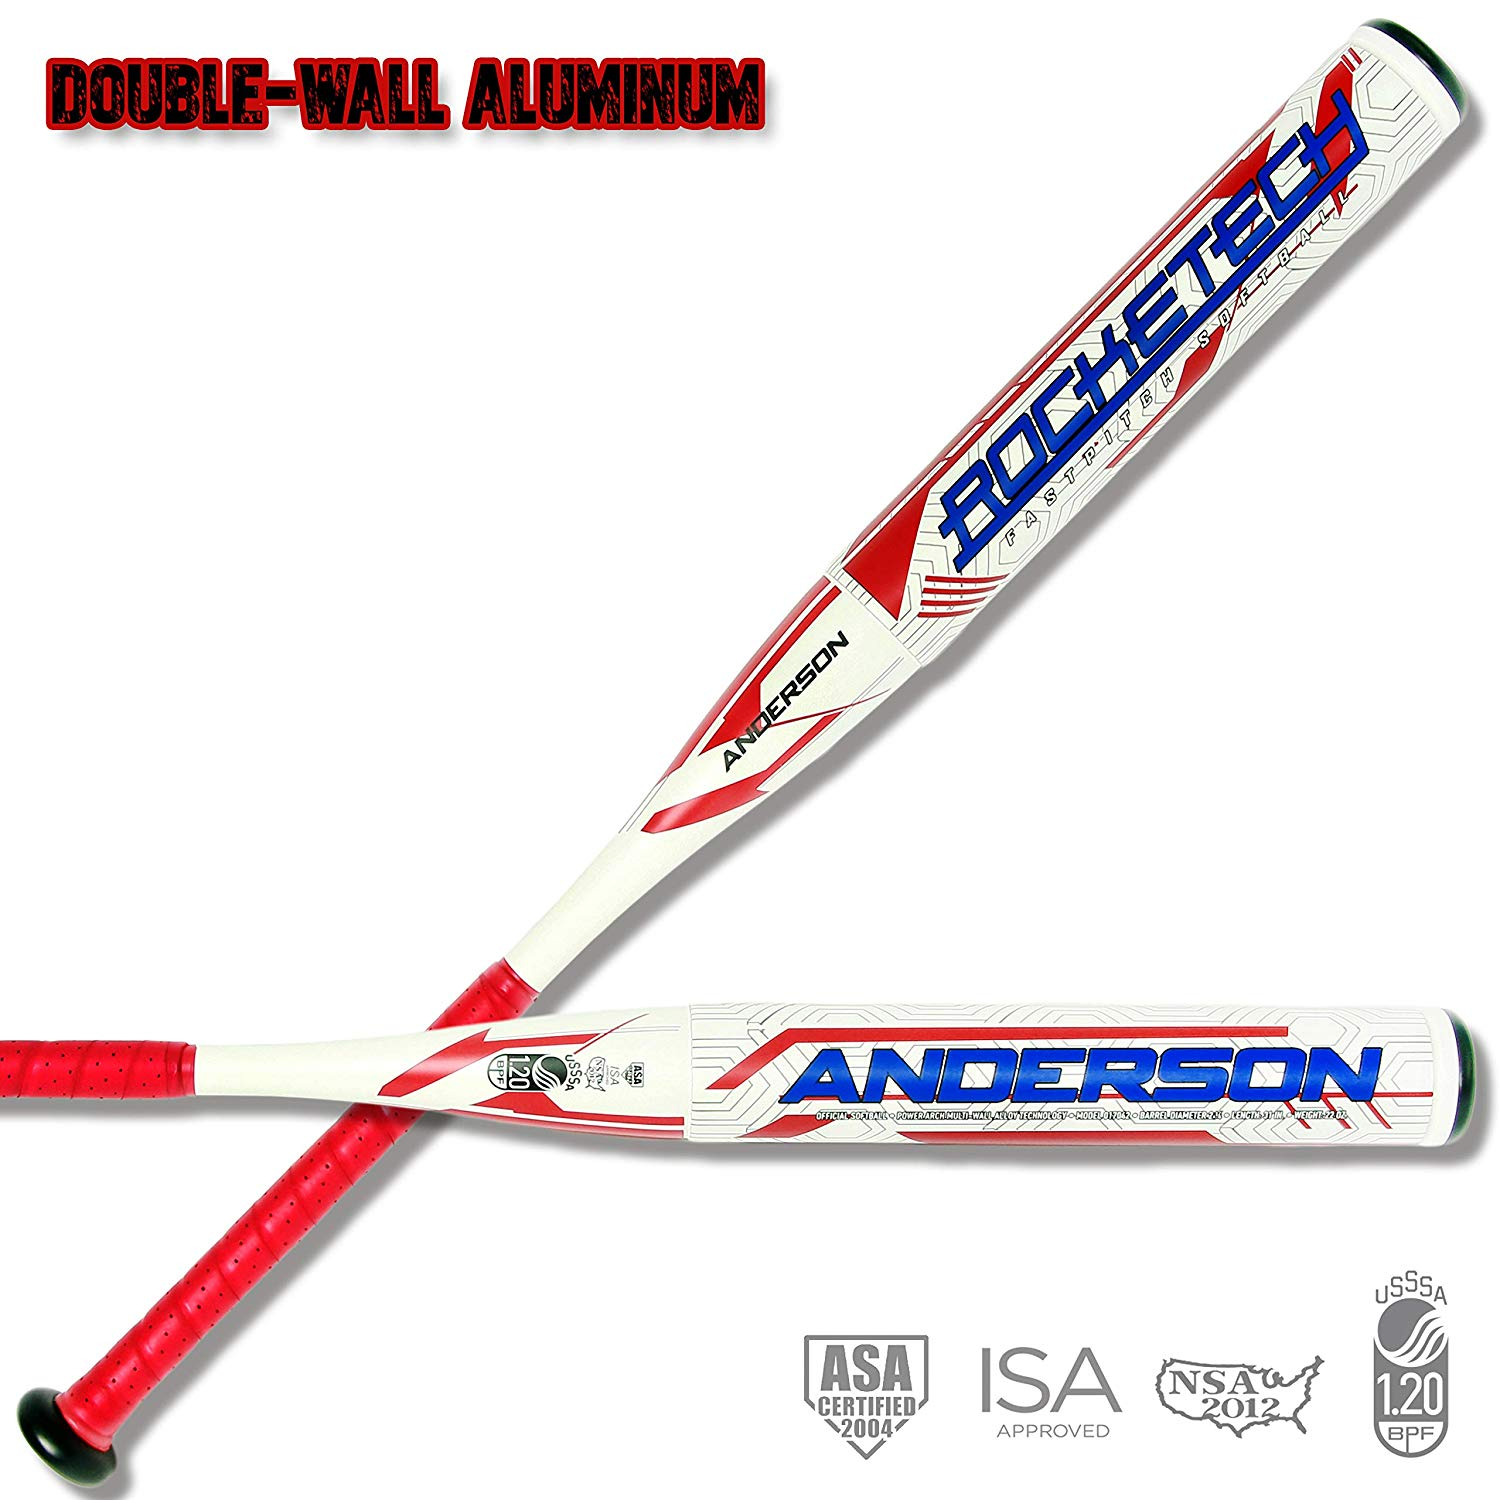 anderson-rocketech-9-double-wall-fastpitch-softball-bat-31-inch-22-oz 017042-3122 Anderson 874147009512 `-9 Drop Weight End Loaded for more POWER guaranteed! Approved By